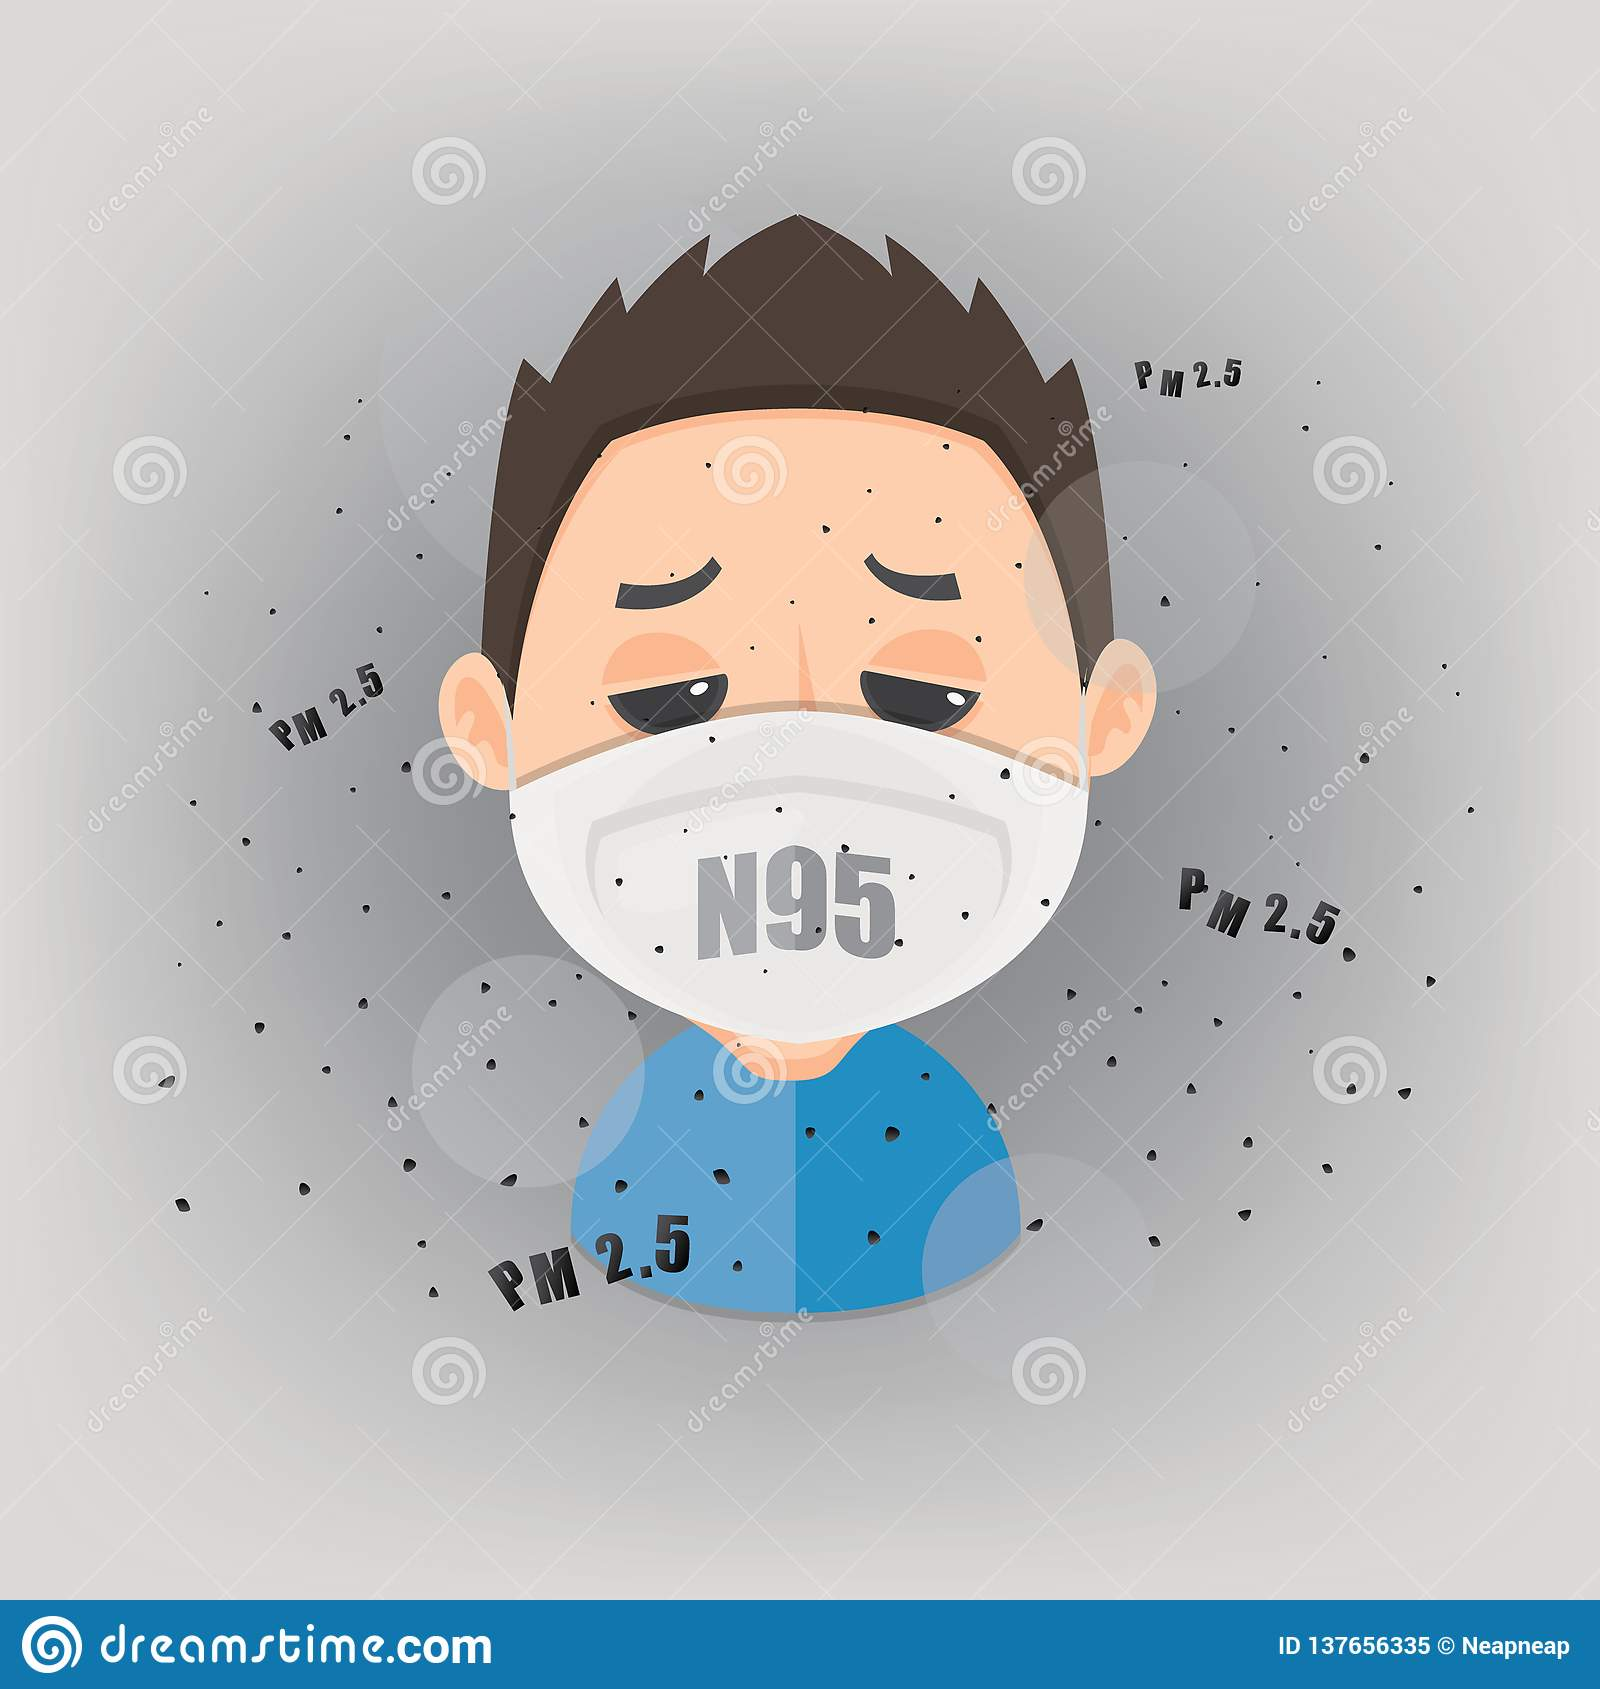 Pollution 5 Mask Air Is Human To Pm Wearing N95 Protect Outdoor 2